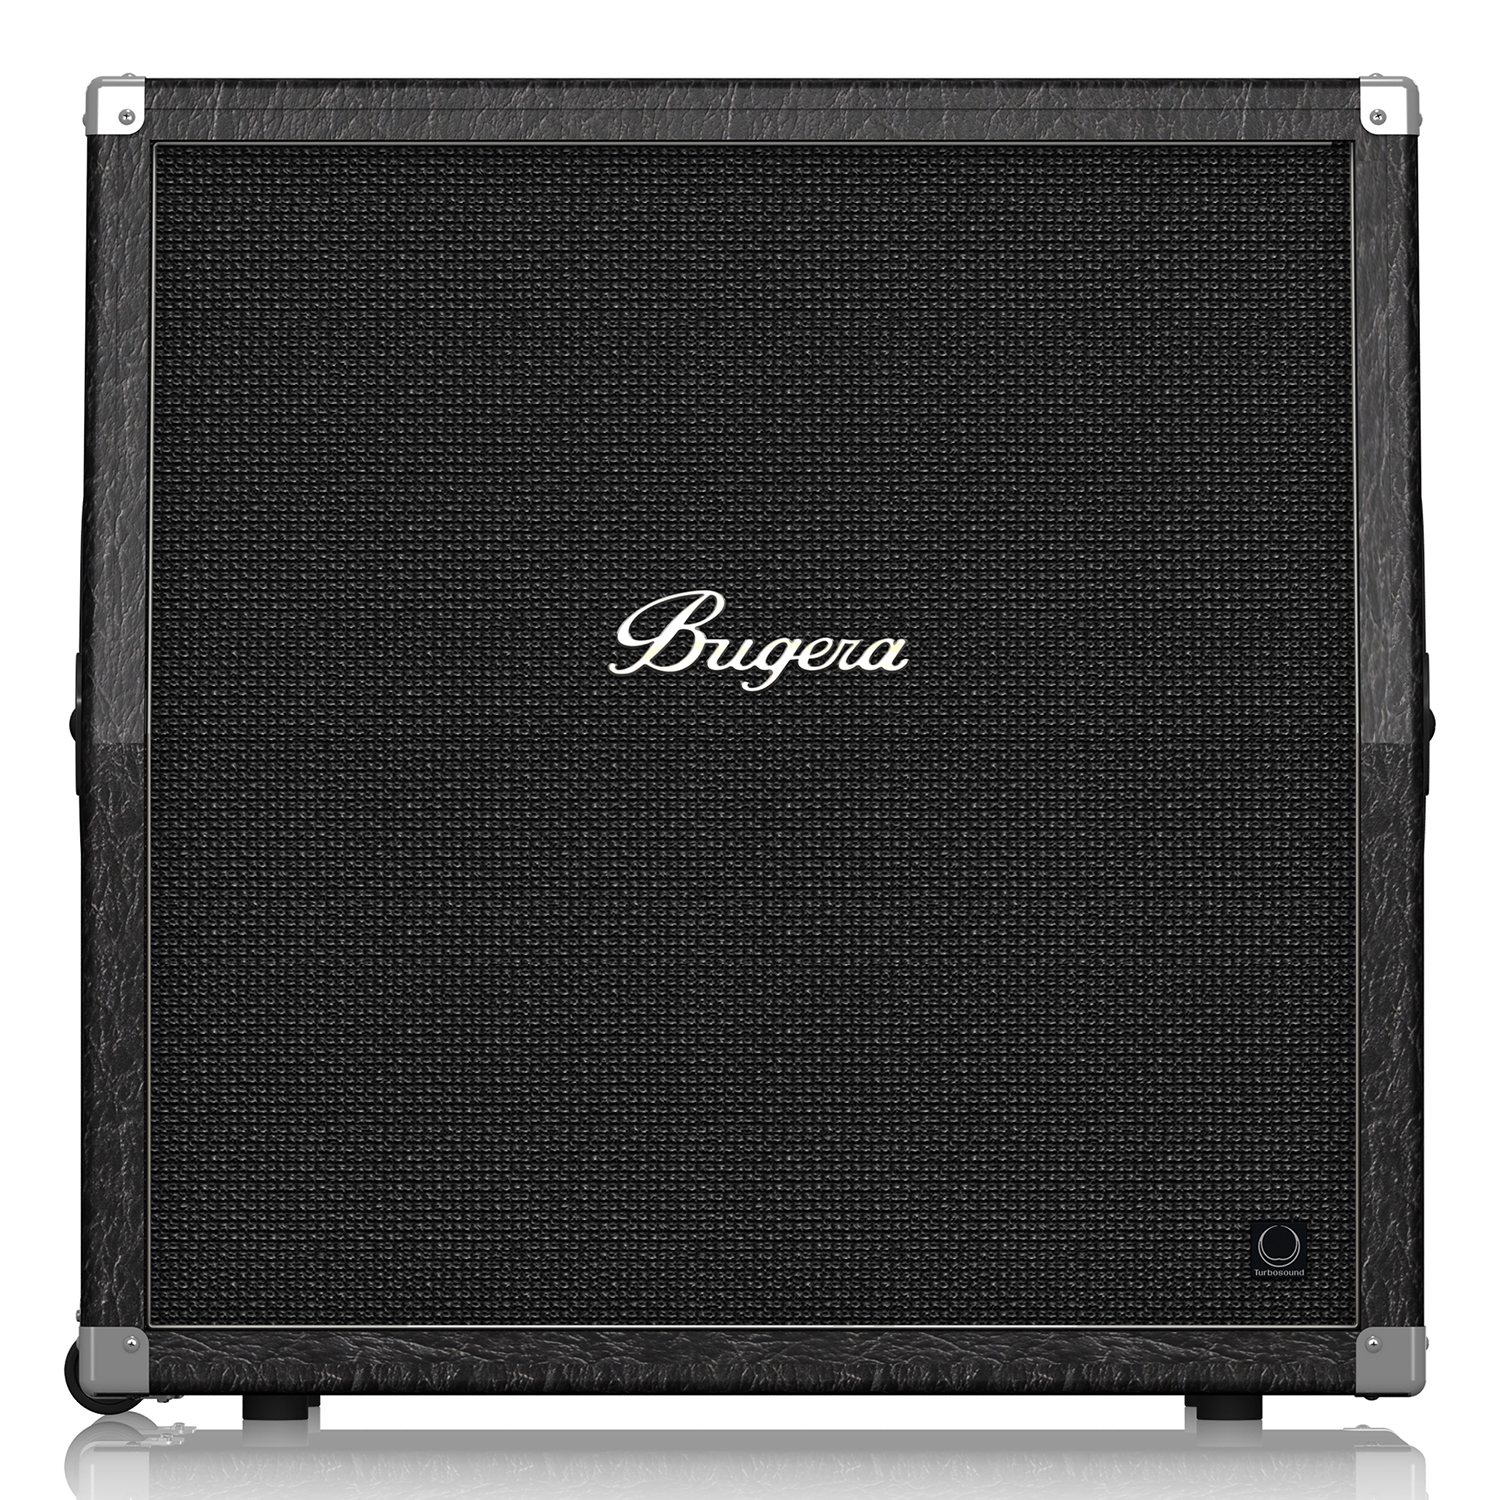 "Classic 4 x 12"", 200-Watt Half-Stack Guitar Cabinet with Original TURBOSOUND Speakers"